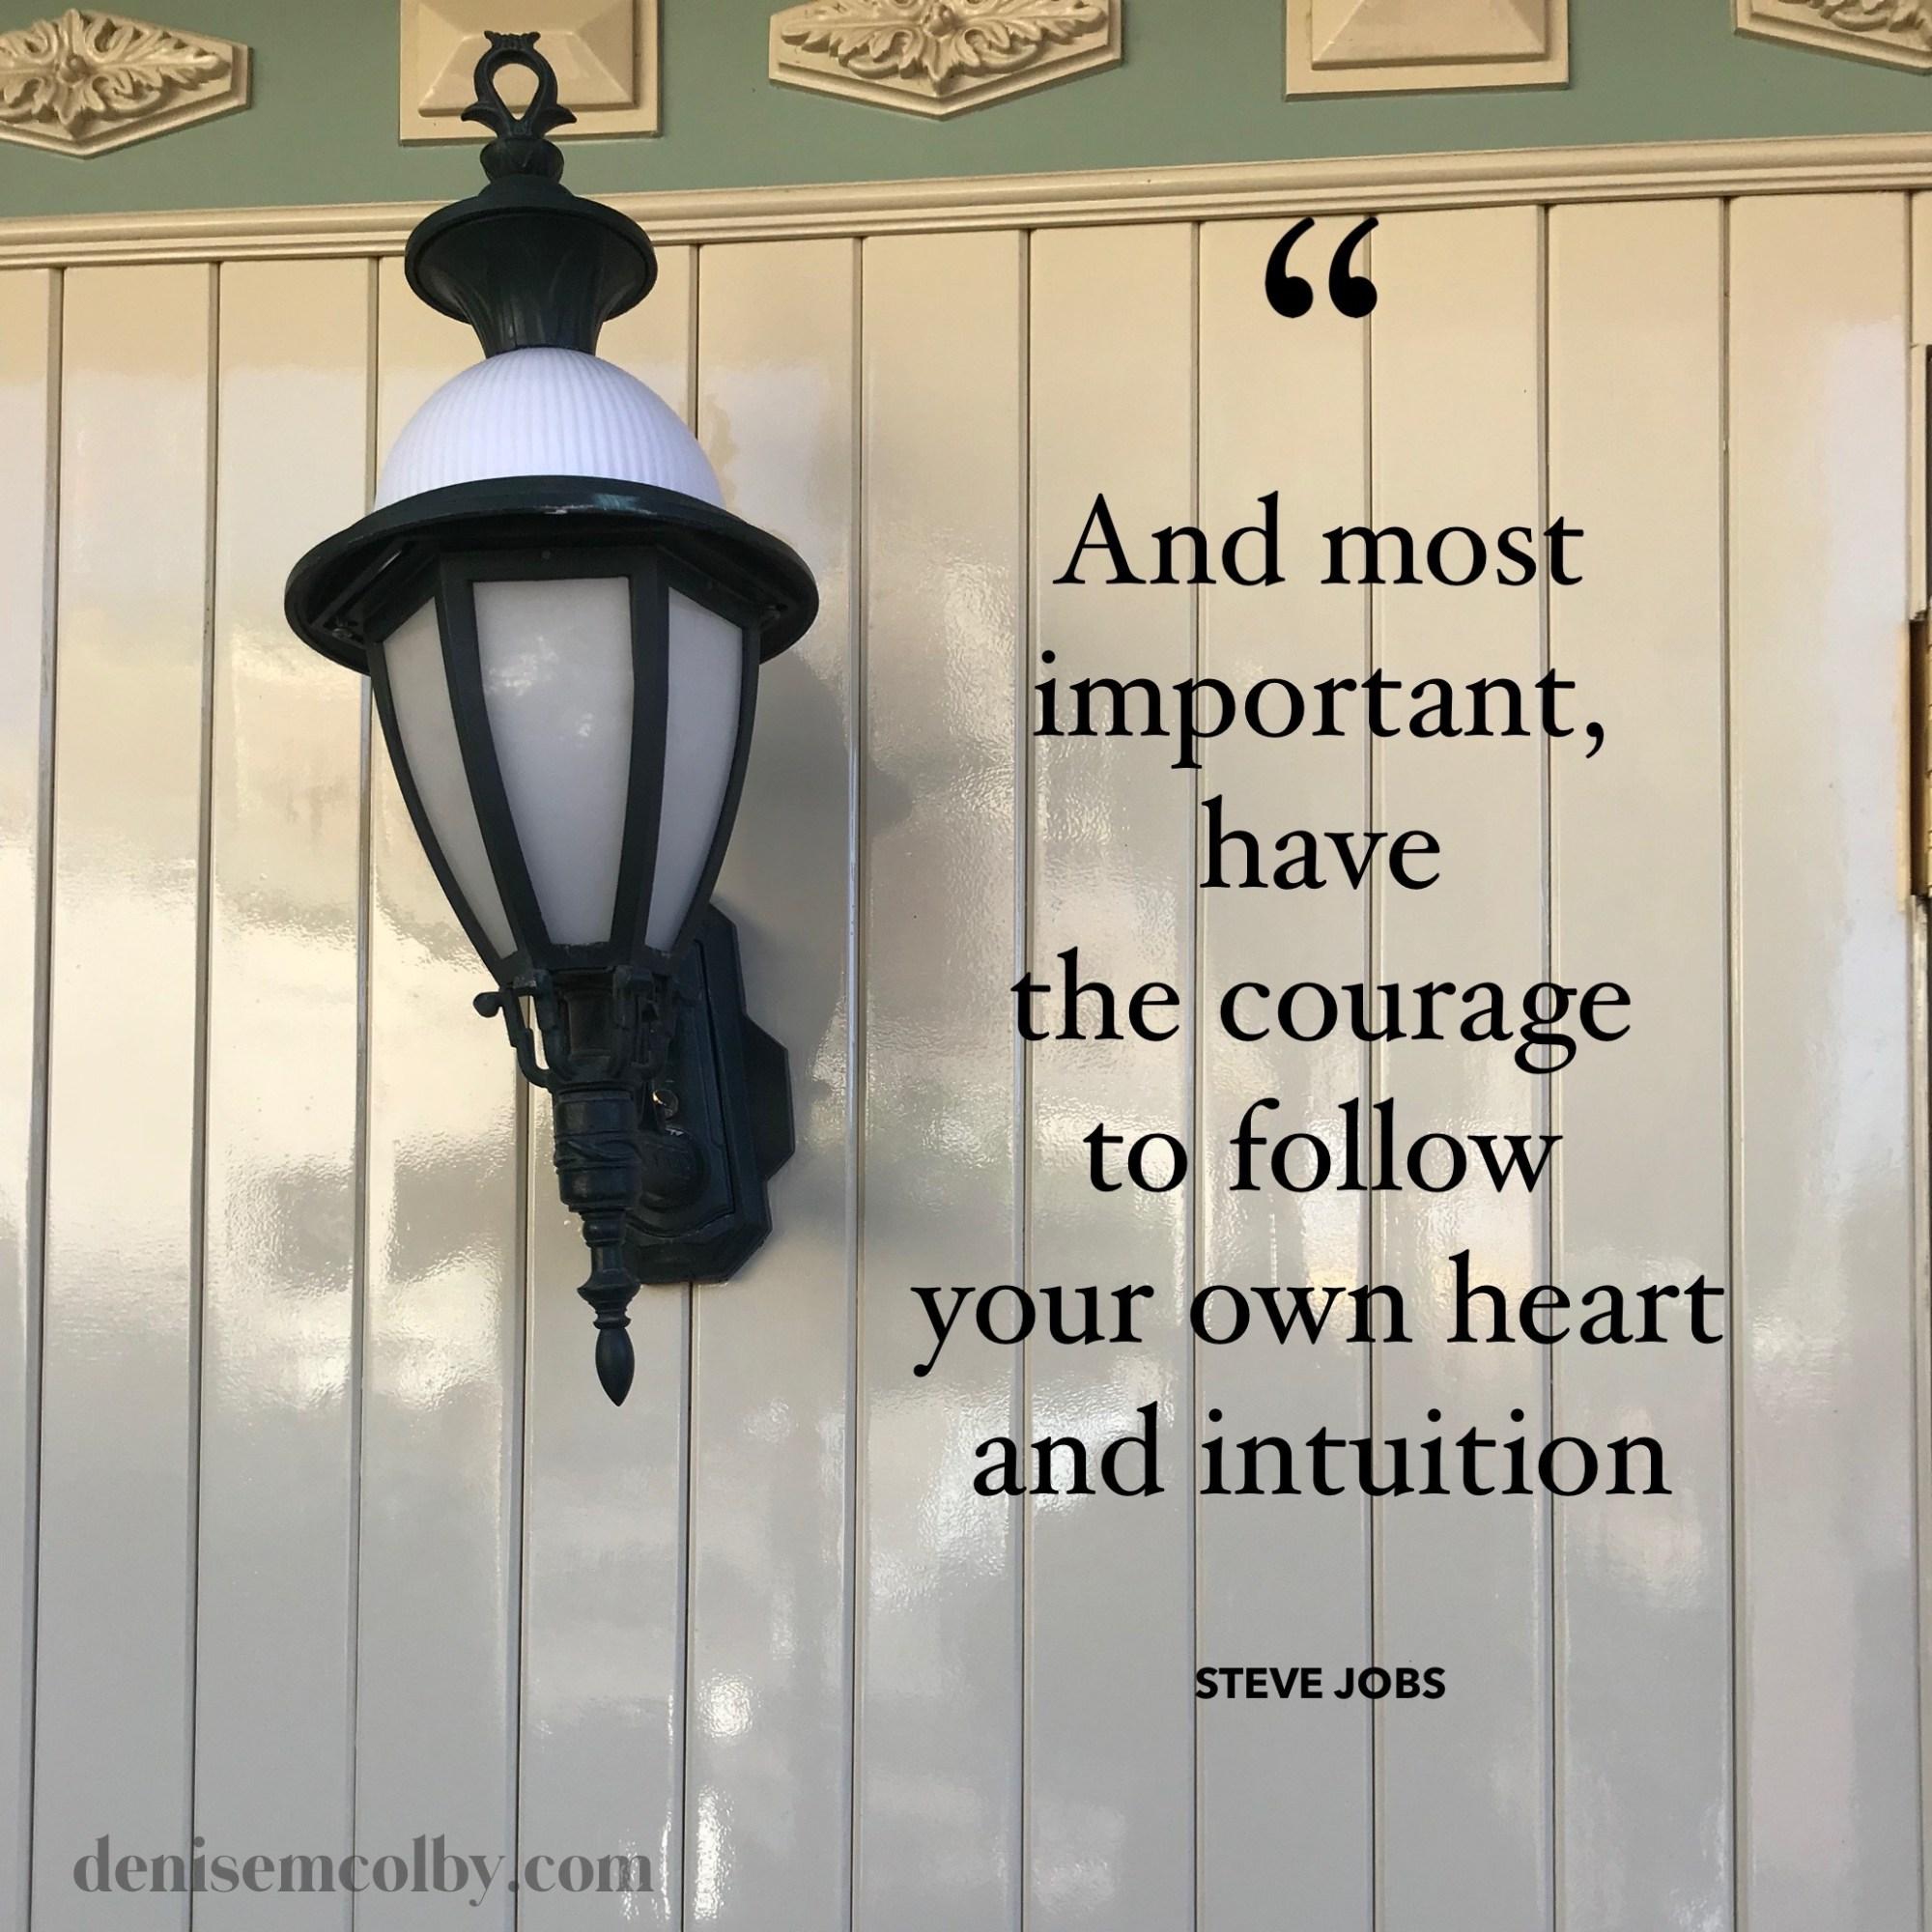 Courage quote by Steve Jobs with an outside light